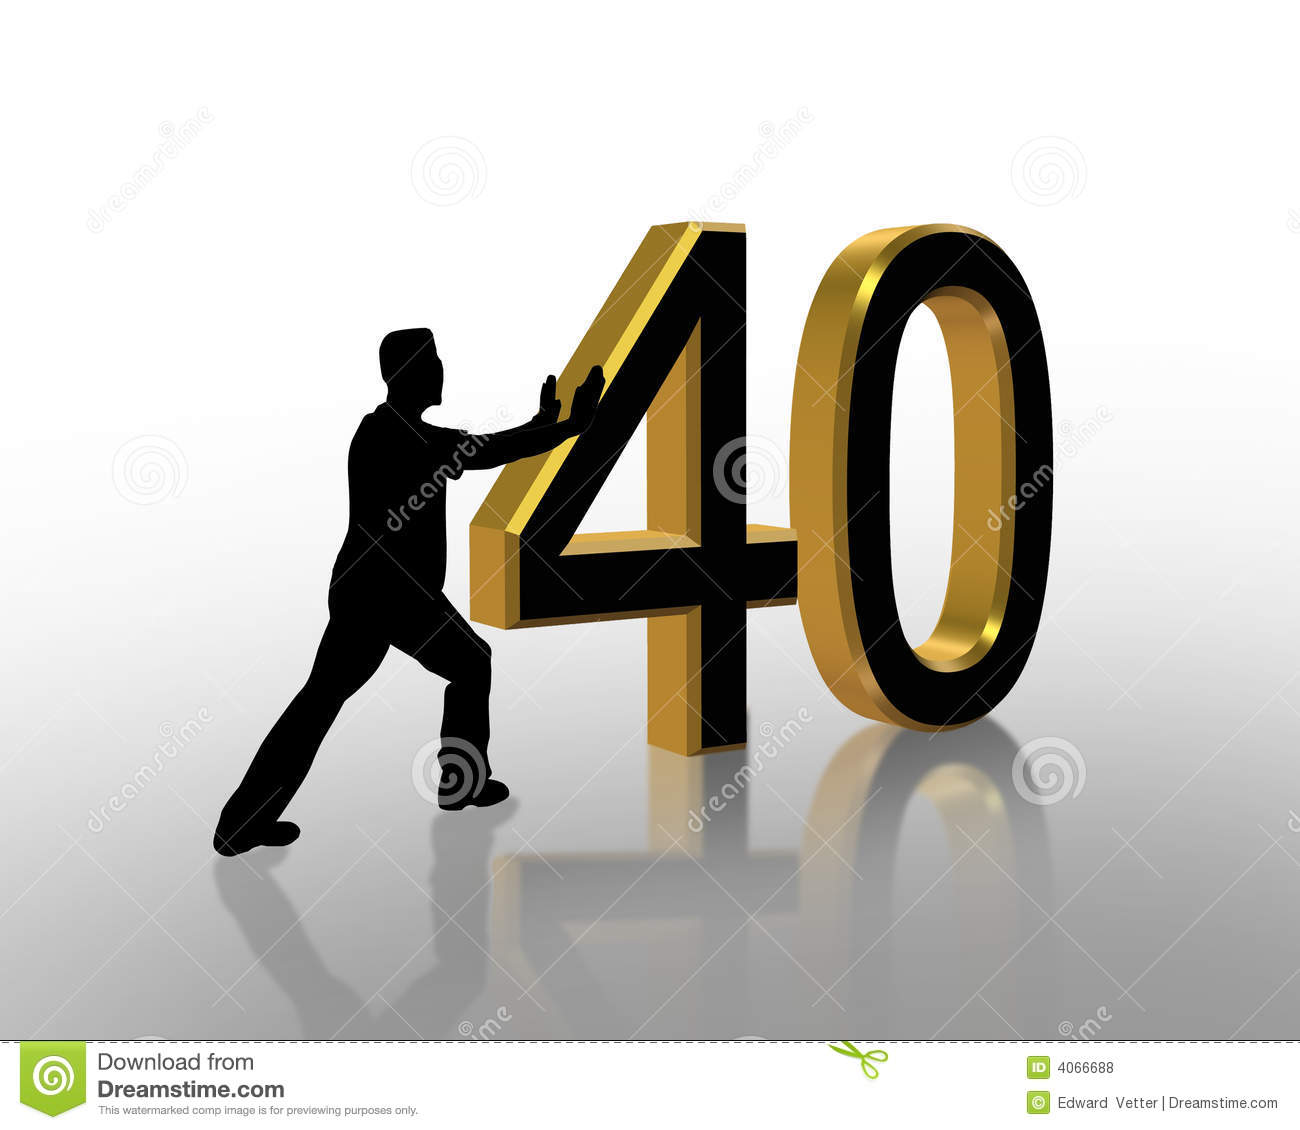 ... Illustration of man pushing numbers for Birthday card or background